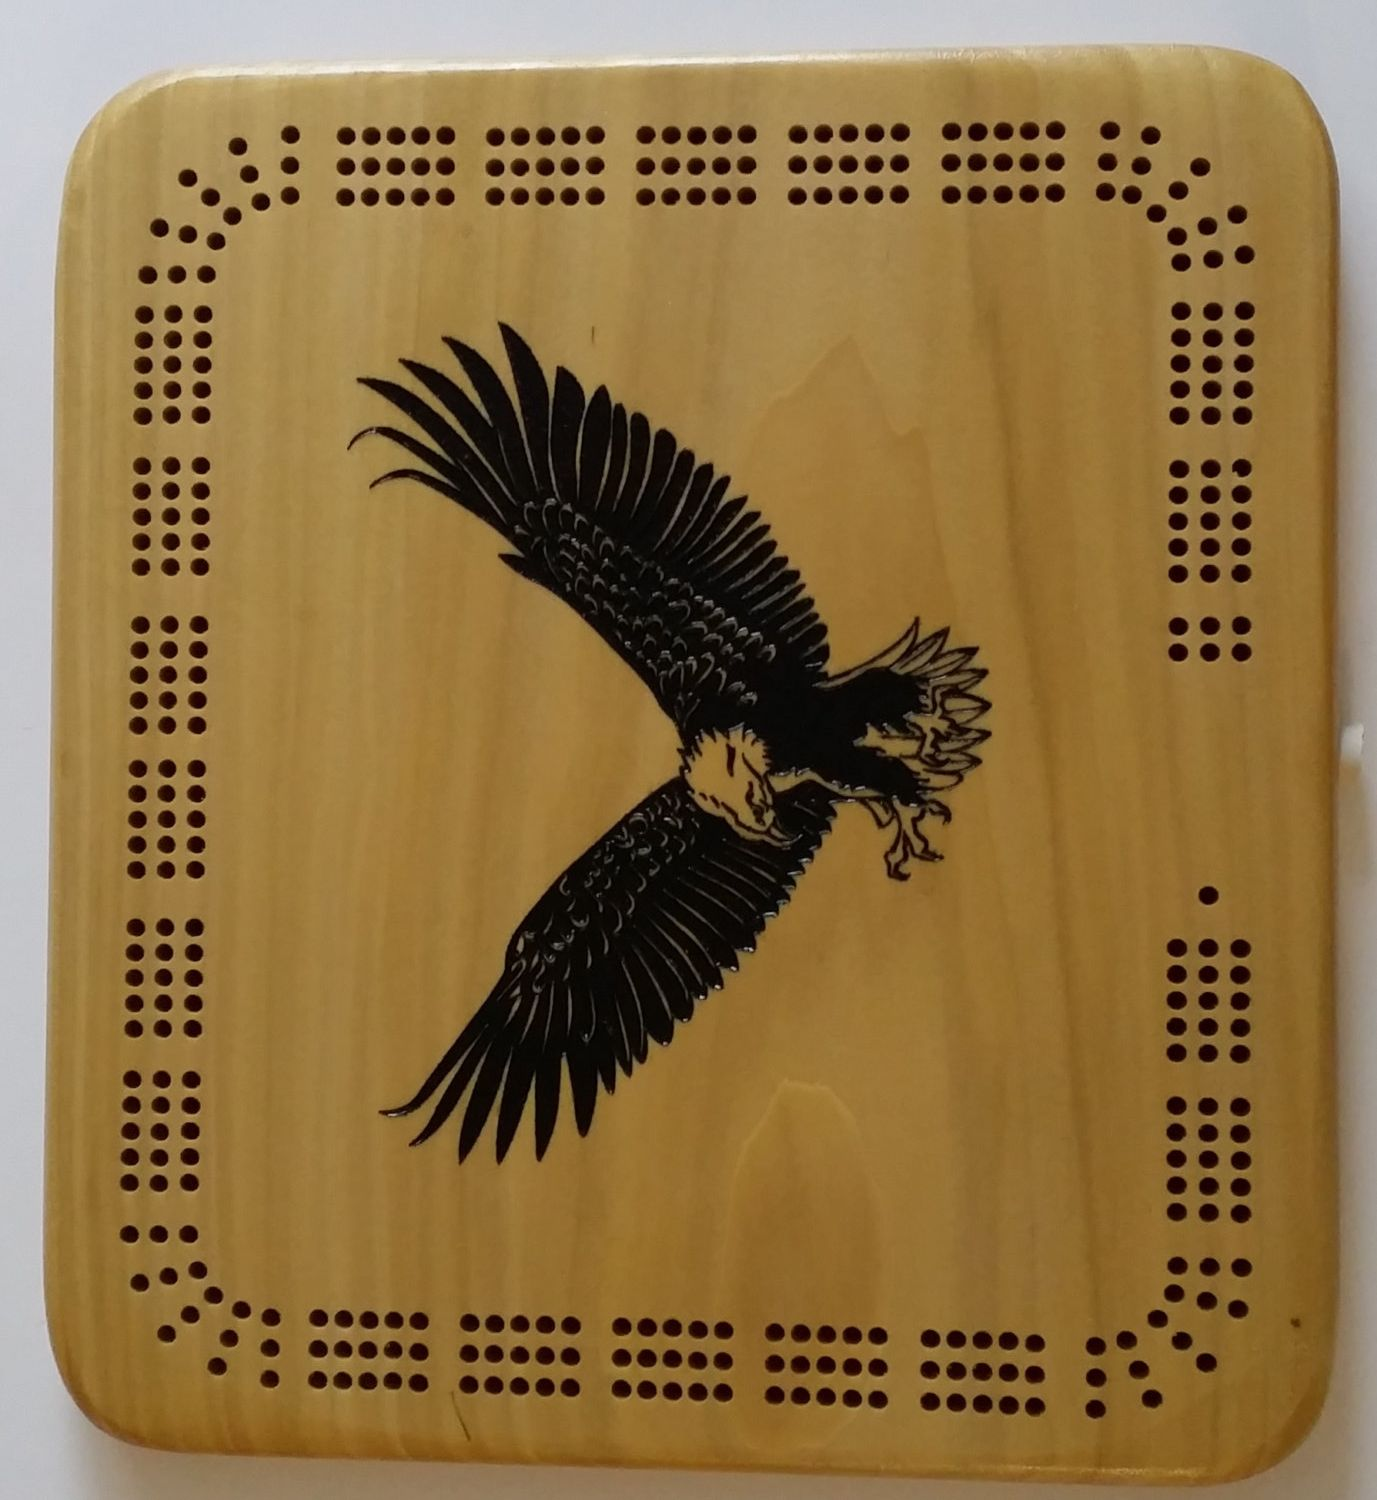 eagle logo wooden cribbage board  Custom made unique cribbage board great personnalized gift idea (35.00 USD) by CustomSignsandTags